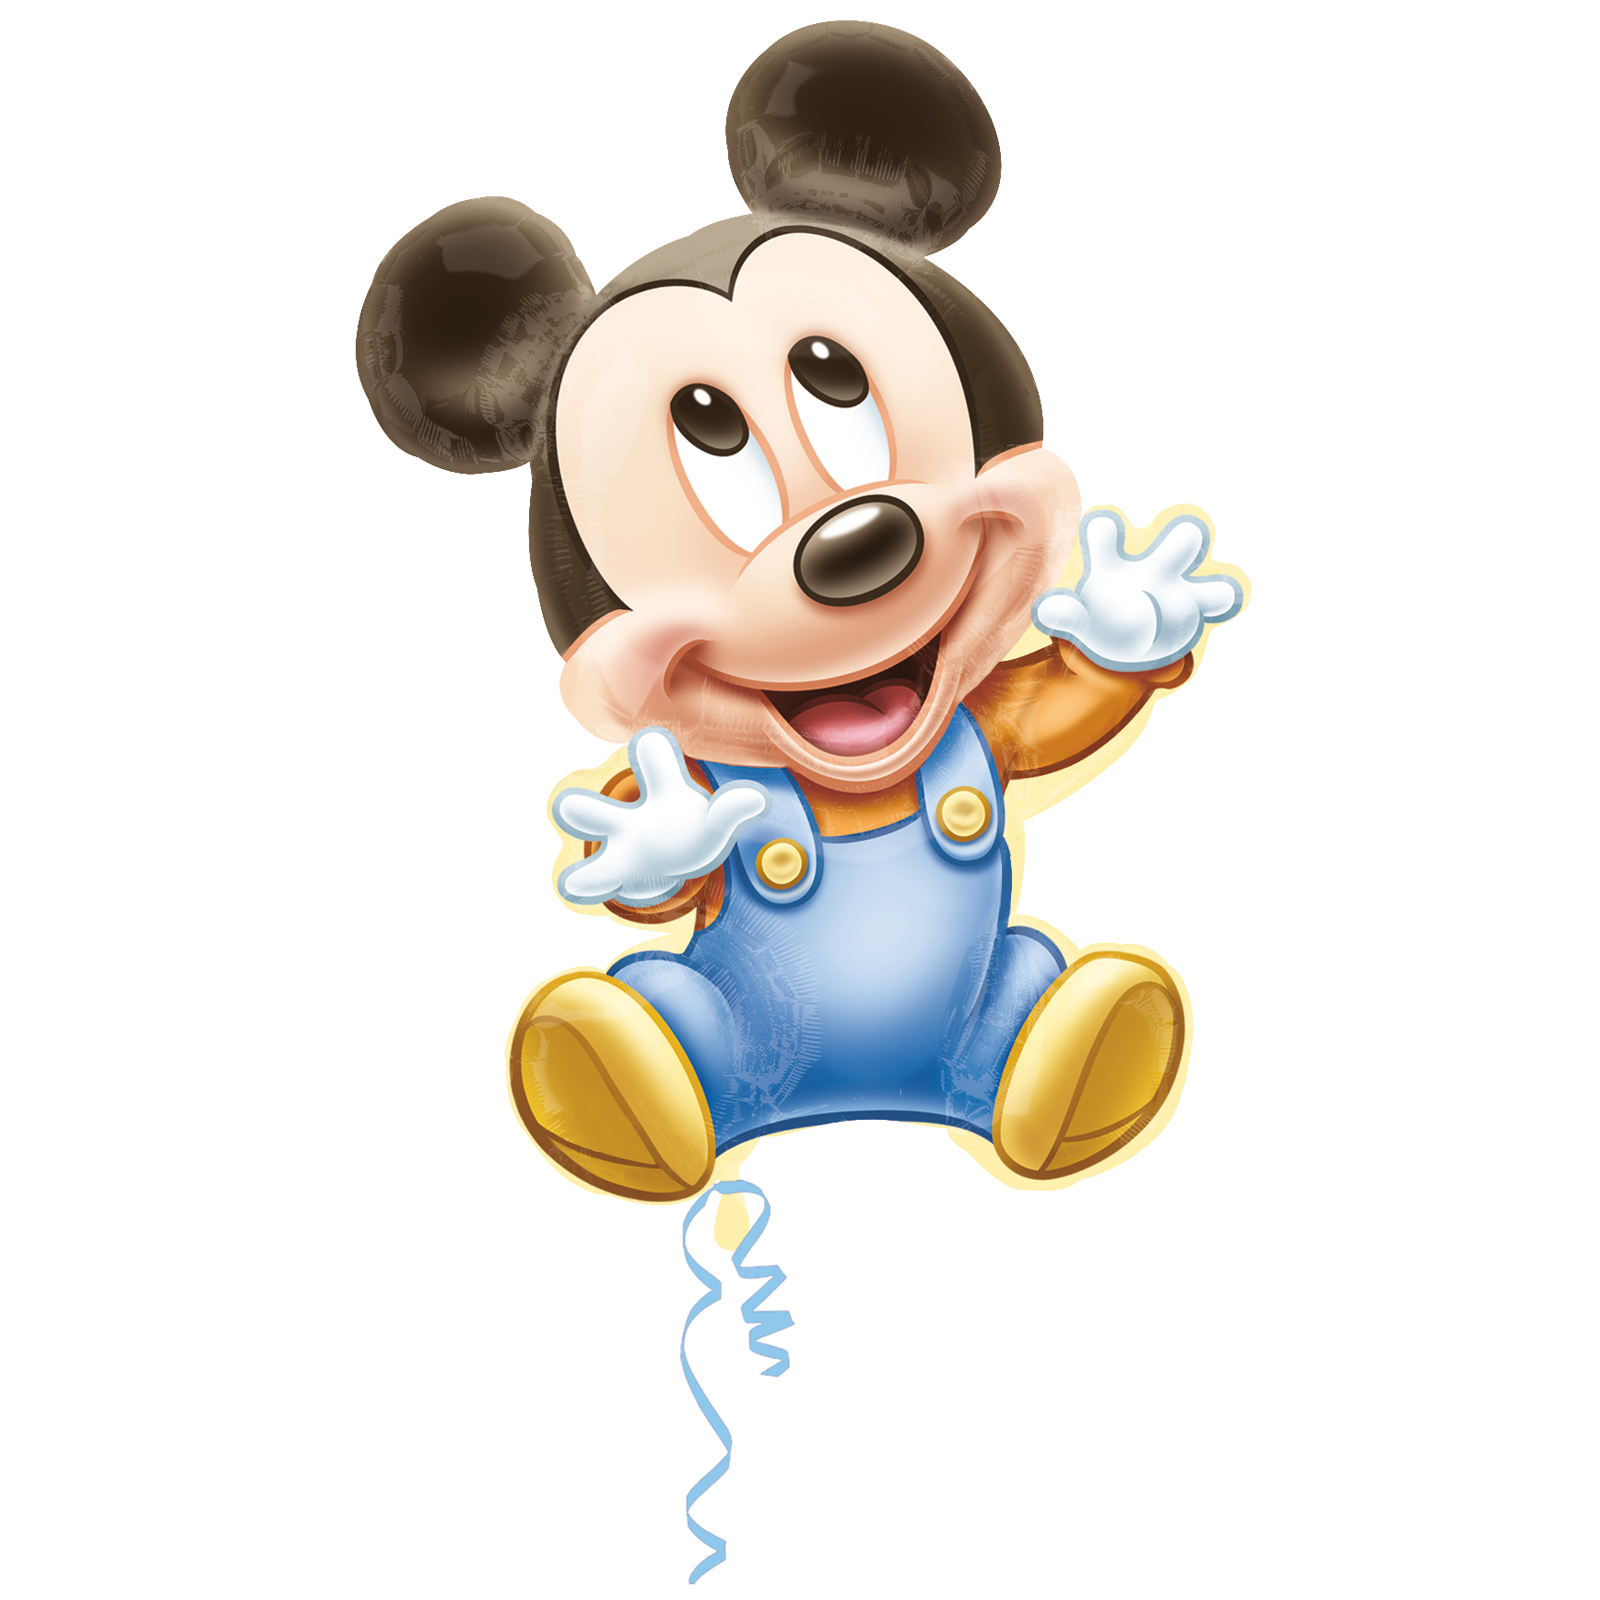 Baby Mickey Mouse Wallpaper   The Art Mad Wallpapers